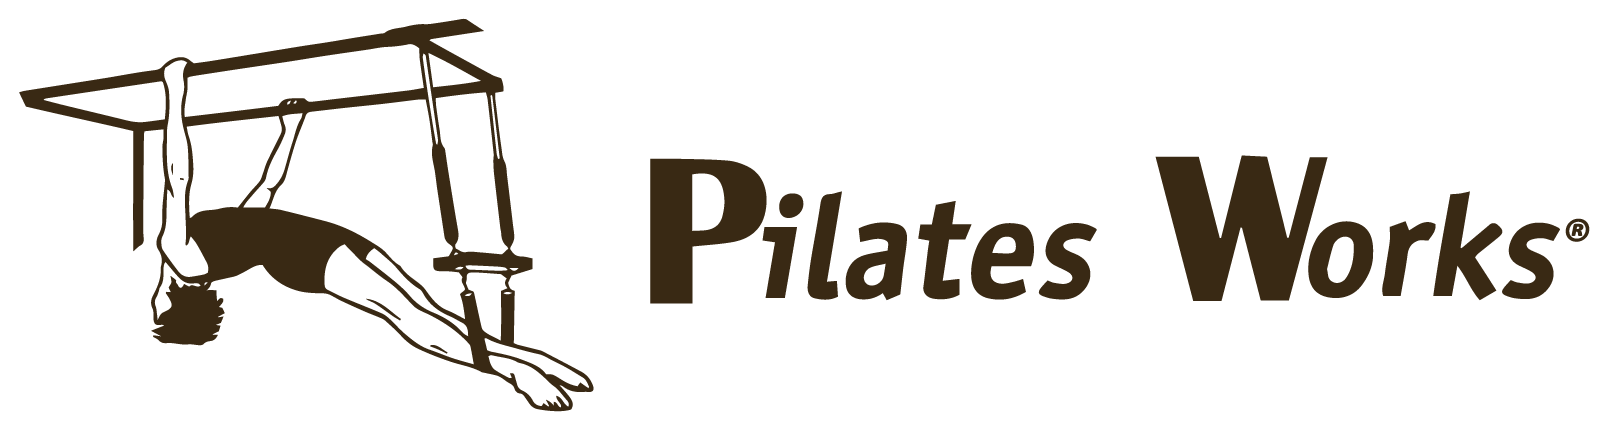 Pilates Works, Oakville, Ontario